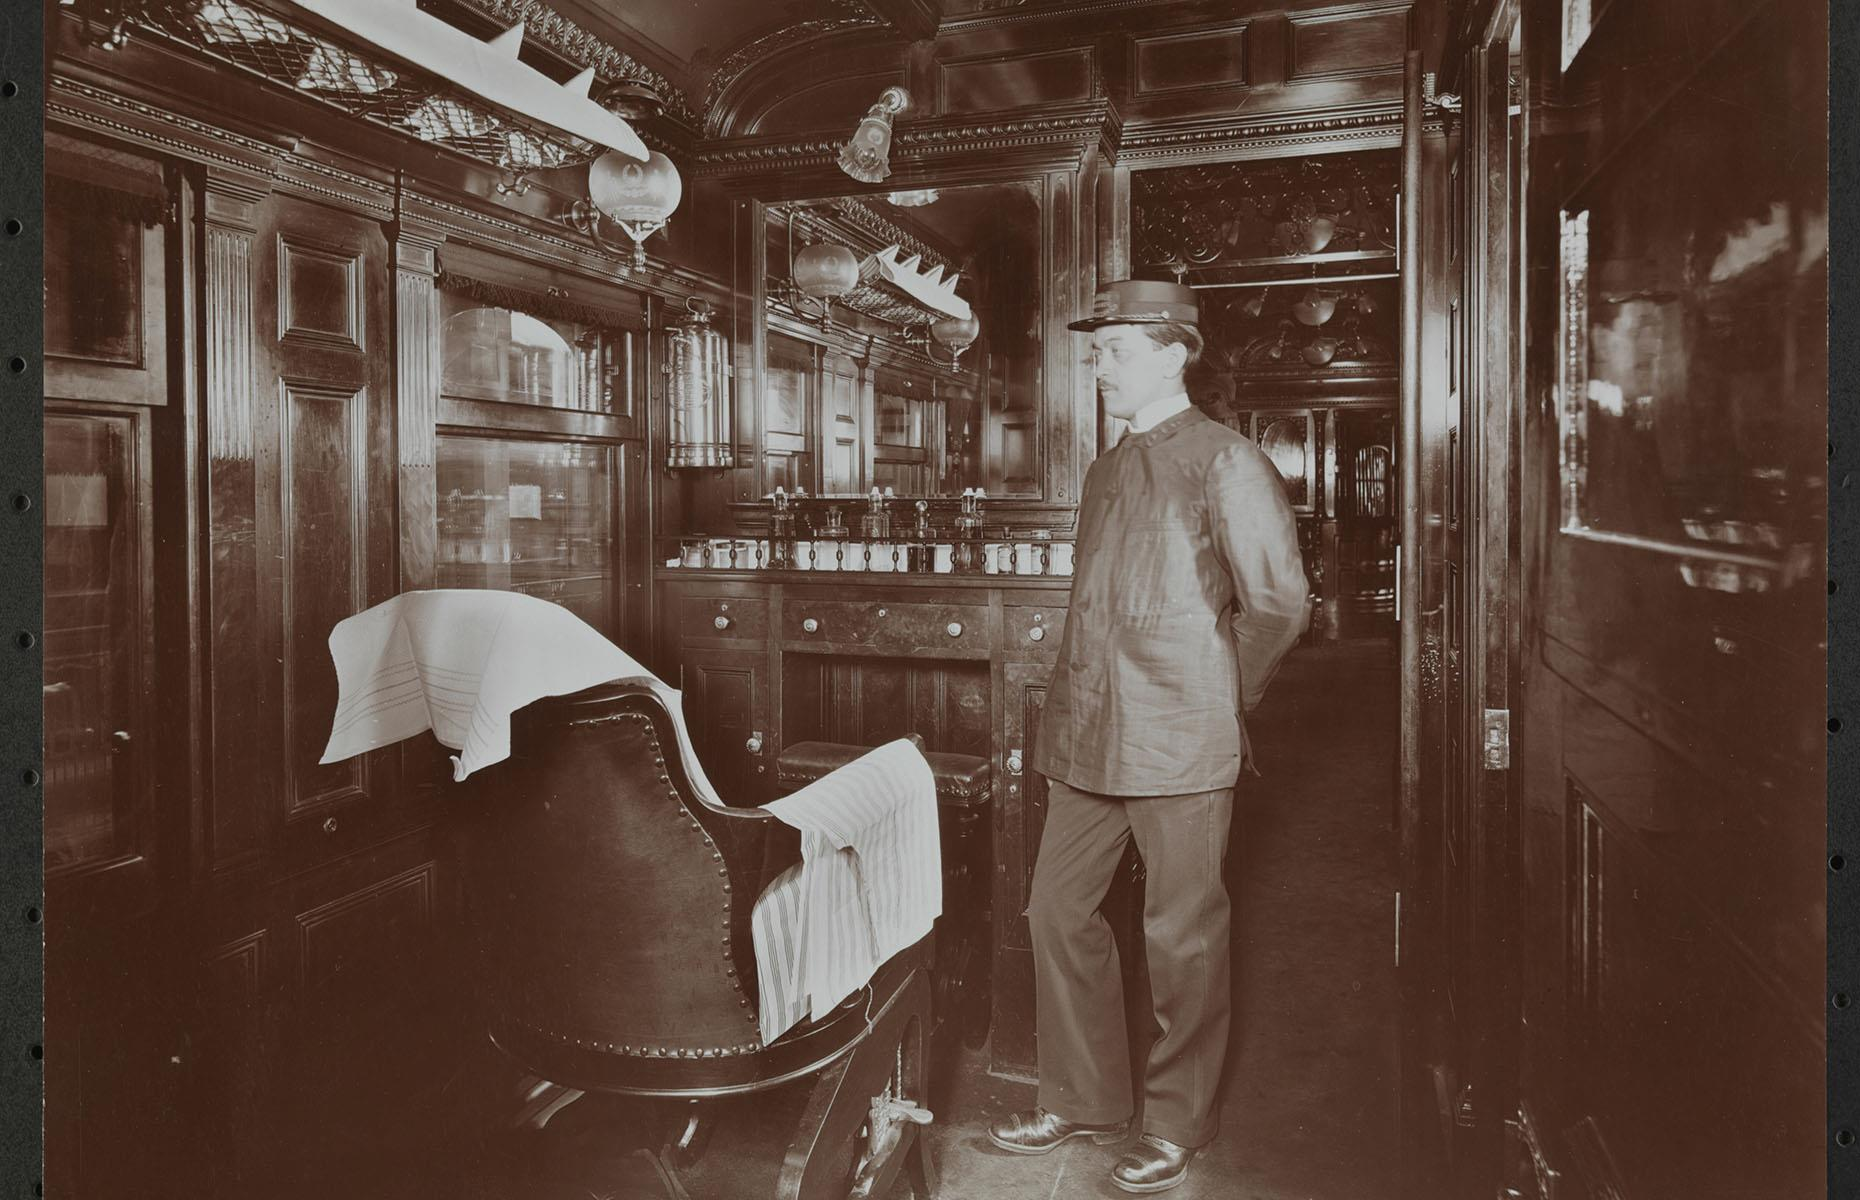 Slide 7 of 32: As the wealthiest passengers' wants and needs grew larger, trains became even more luxurious, turning into 5-star hotels, restaurants and salons on wheels. This barber operated a shop aboard a train of the Erie Railroad, connecting New York City and Jersey City with Cleveland, Buffalo and Chicago.